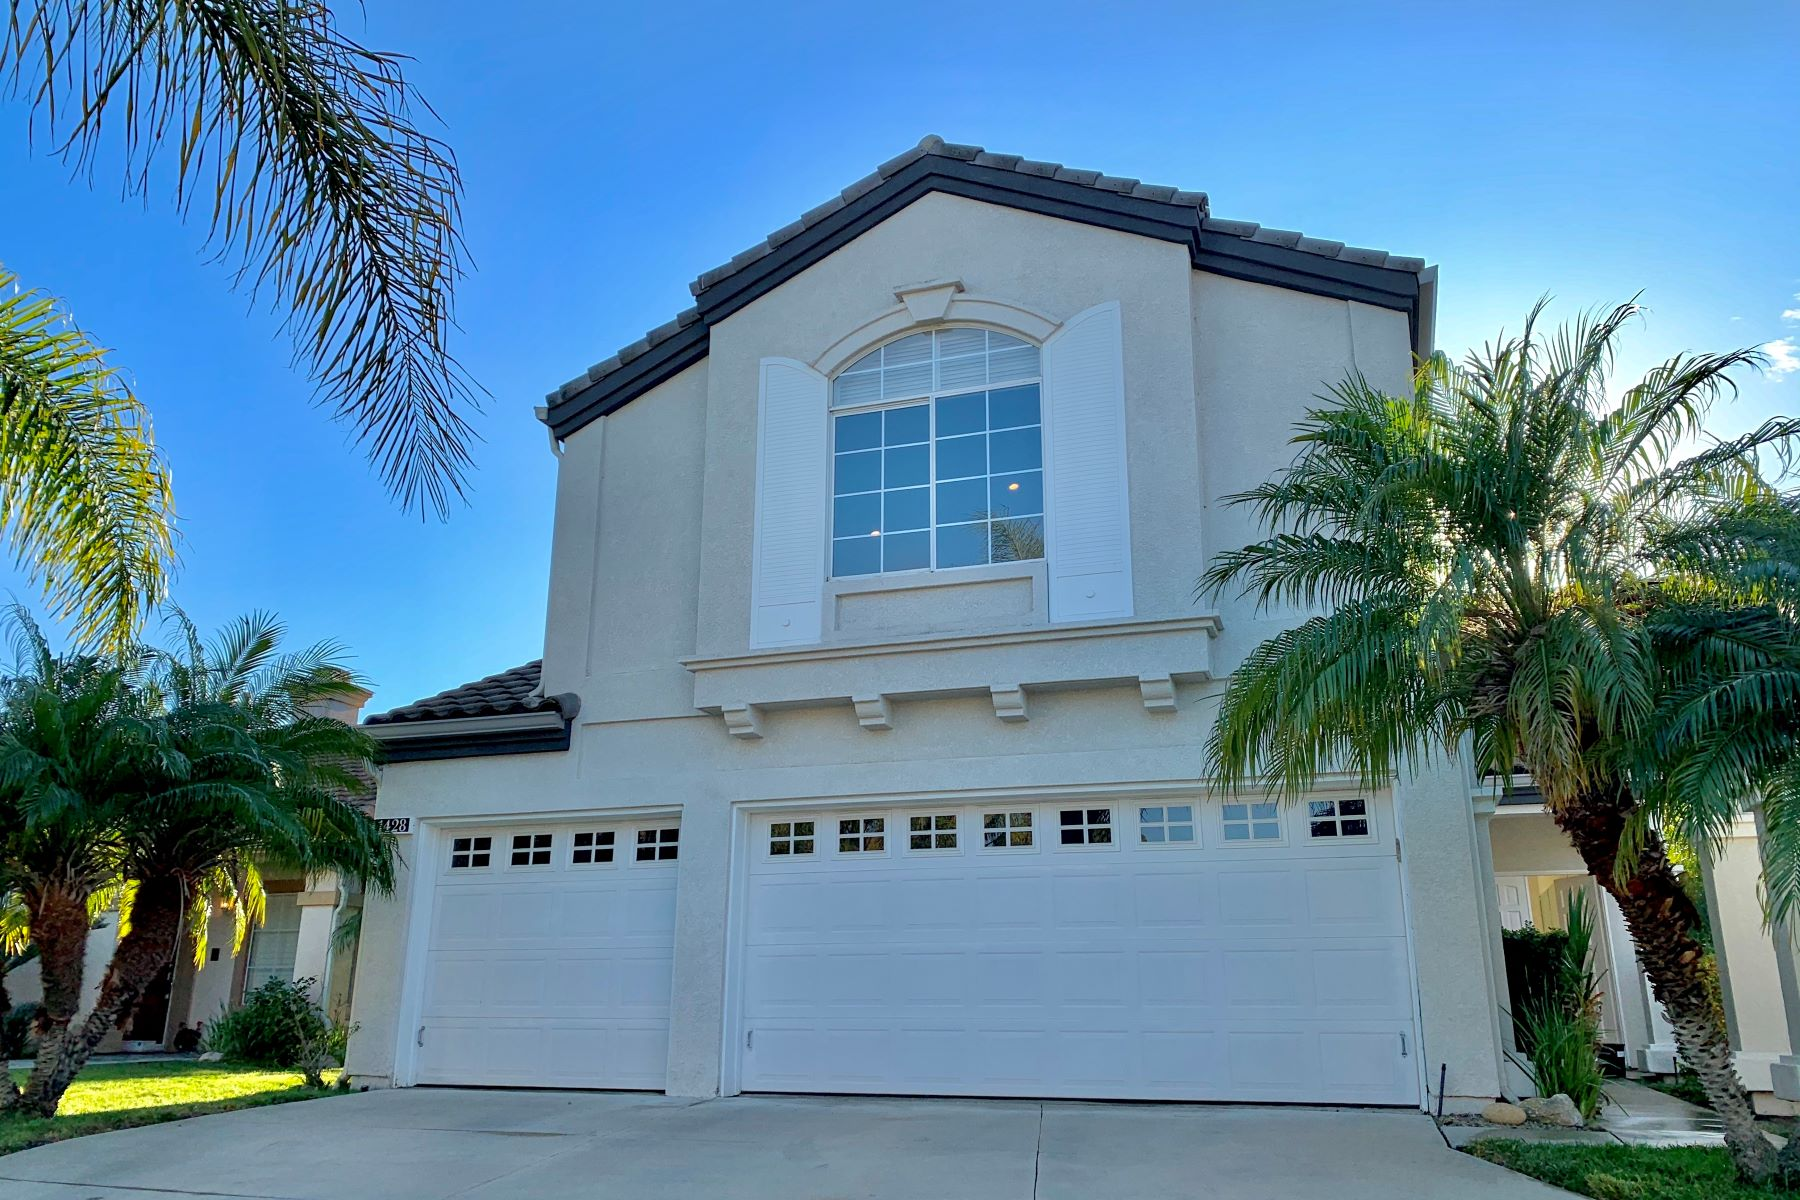 Single Family Homes for Sale at 1428 Sapphire Dragon Street, Thousand Oaks, CA 91320 1428 Sapphire Dragon Street Thousand Oaks, California 91320 United States